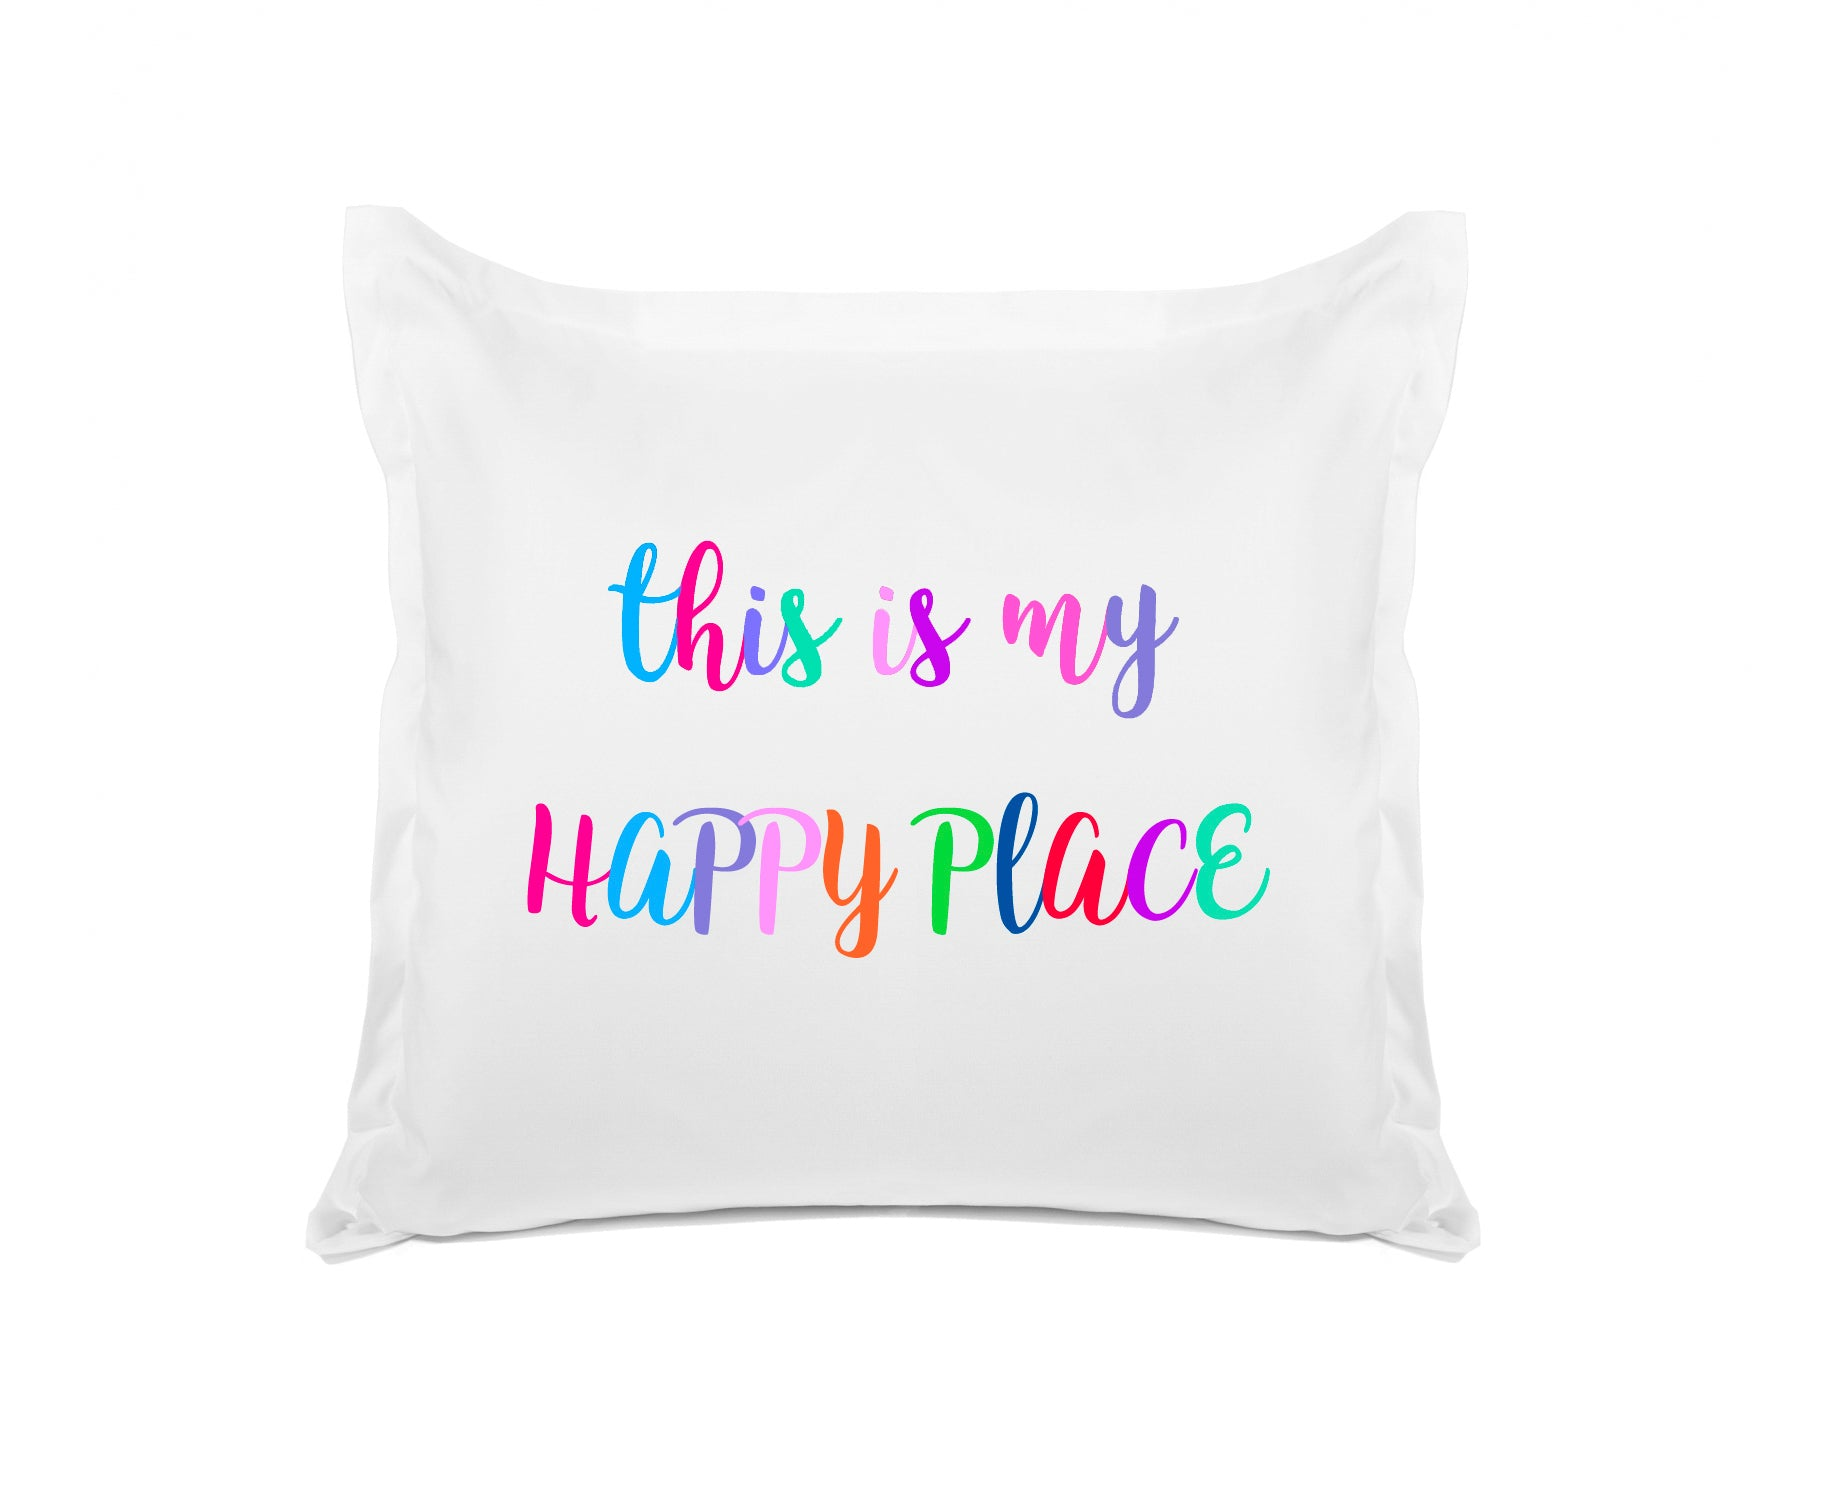 This is my happy place pillow with saying Di Lewis bedroom decor